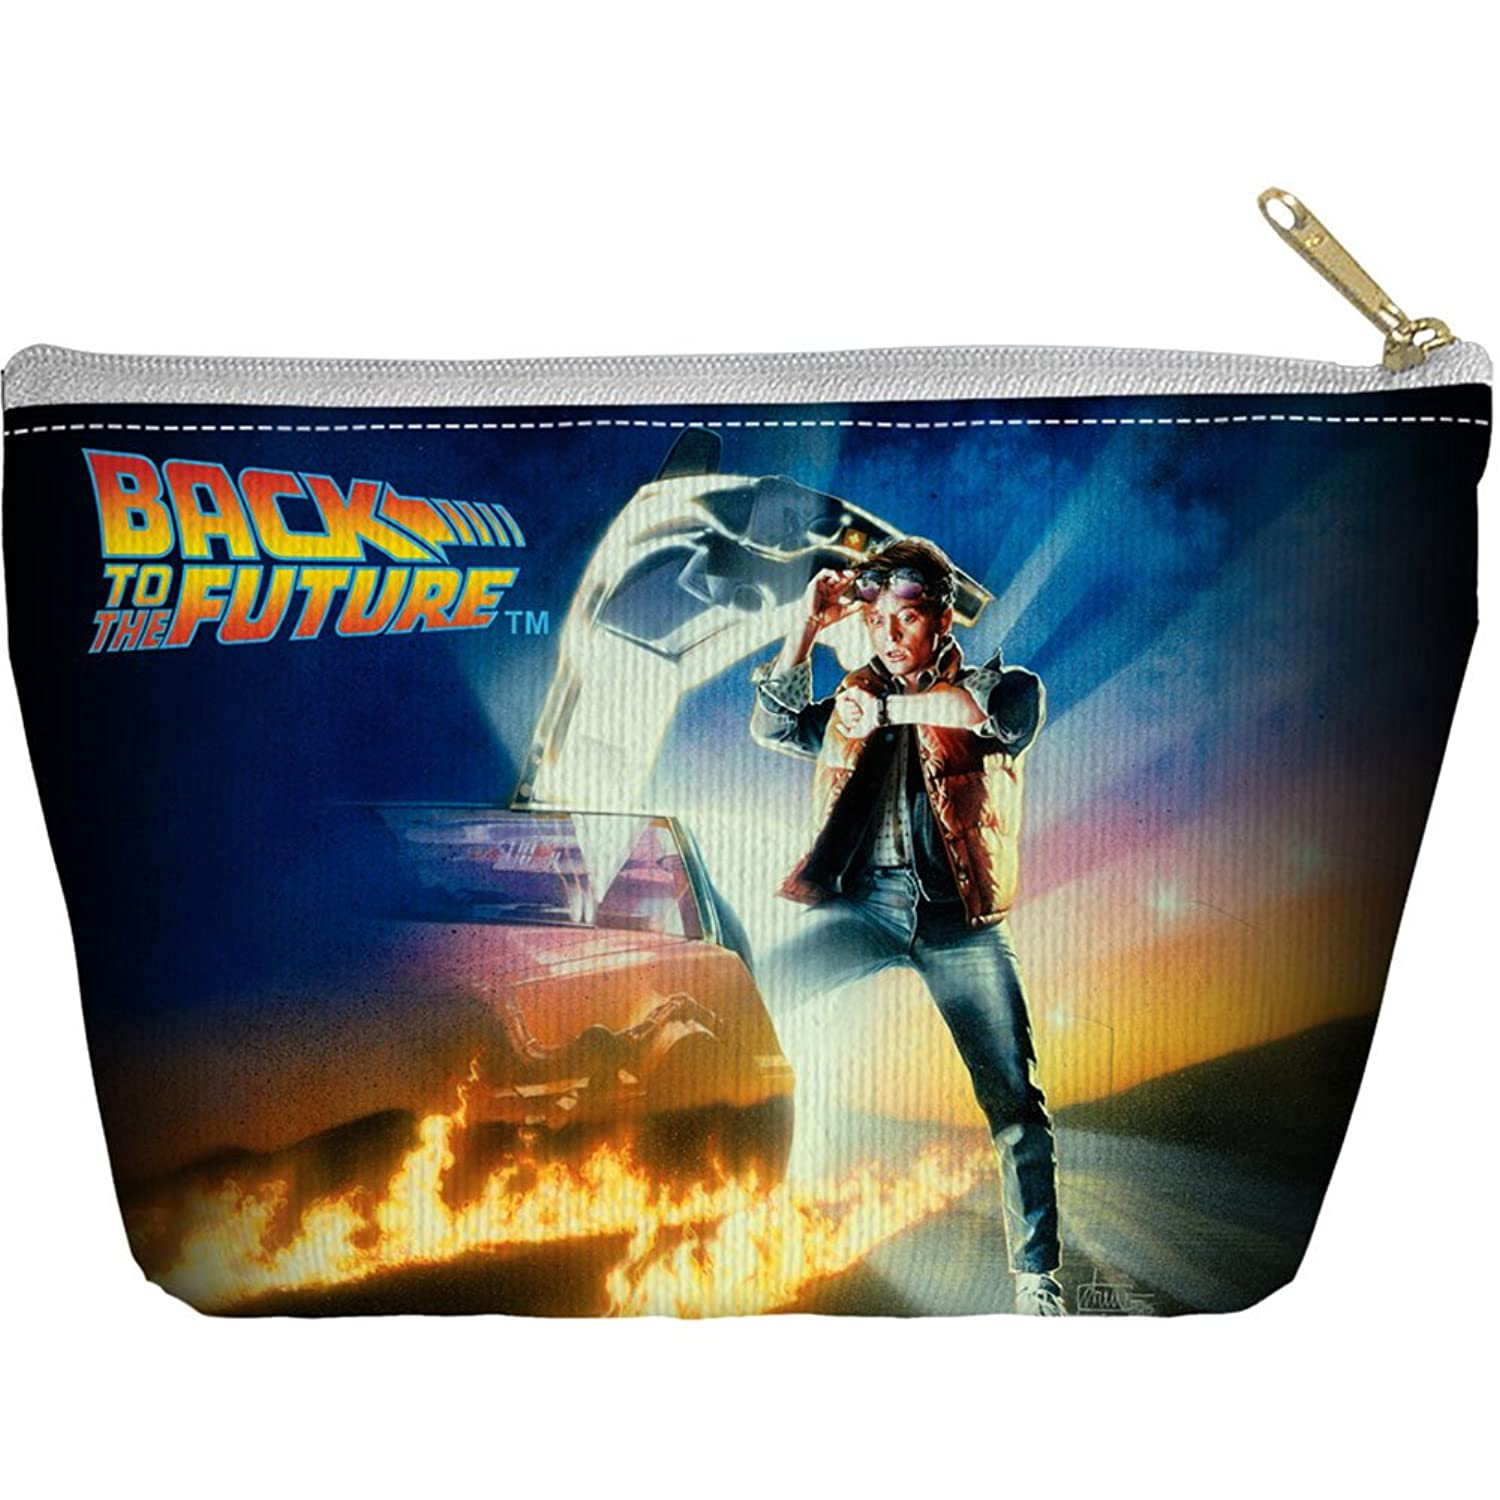 Back To The Future Bttf Poster Accessory Pouch White